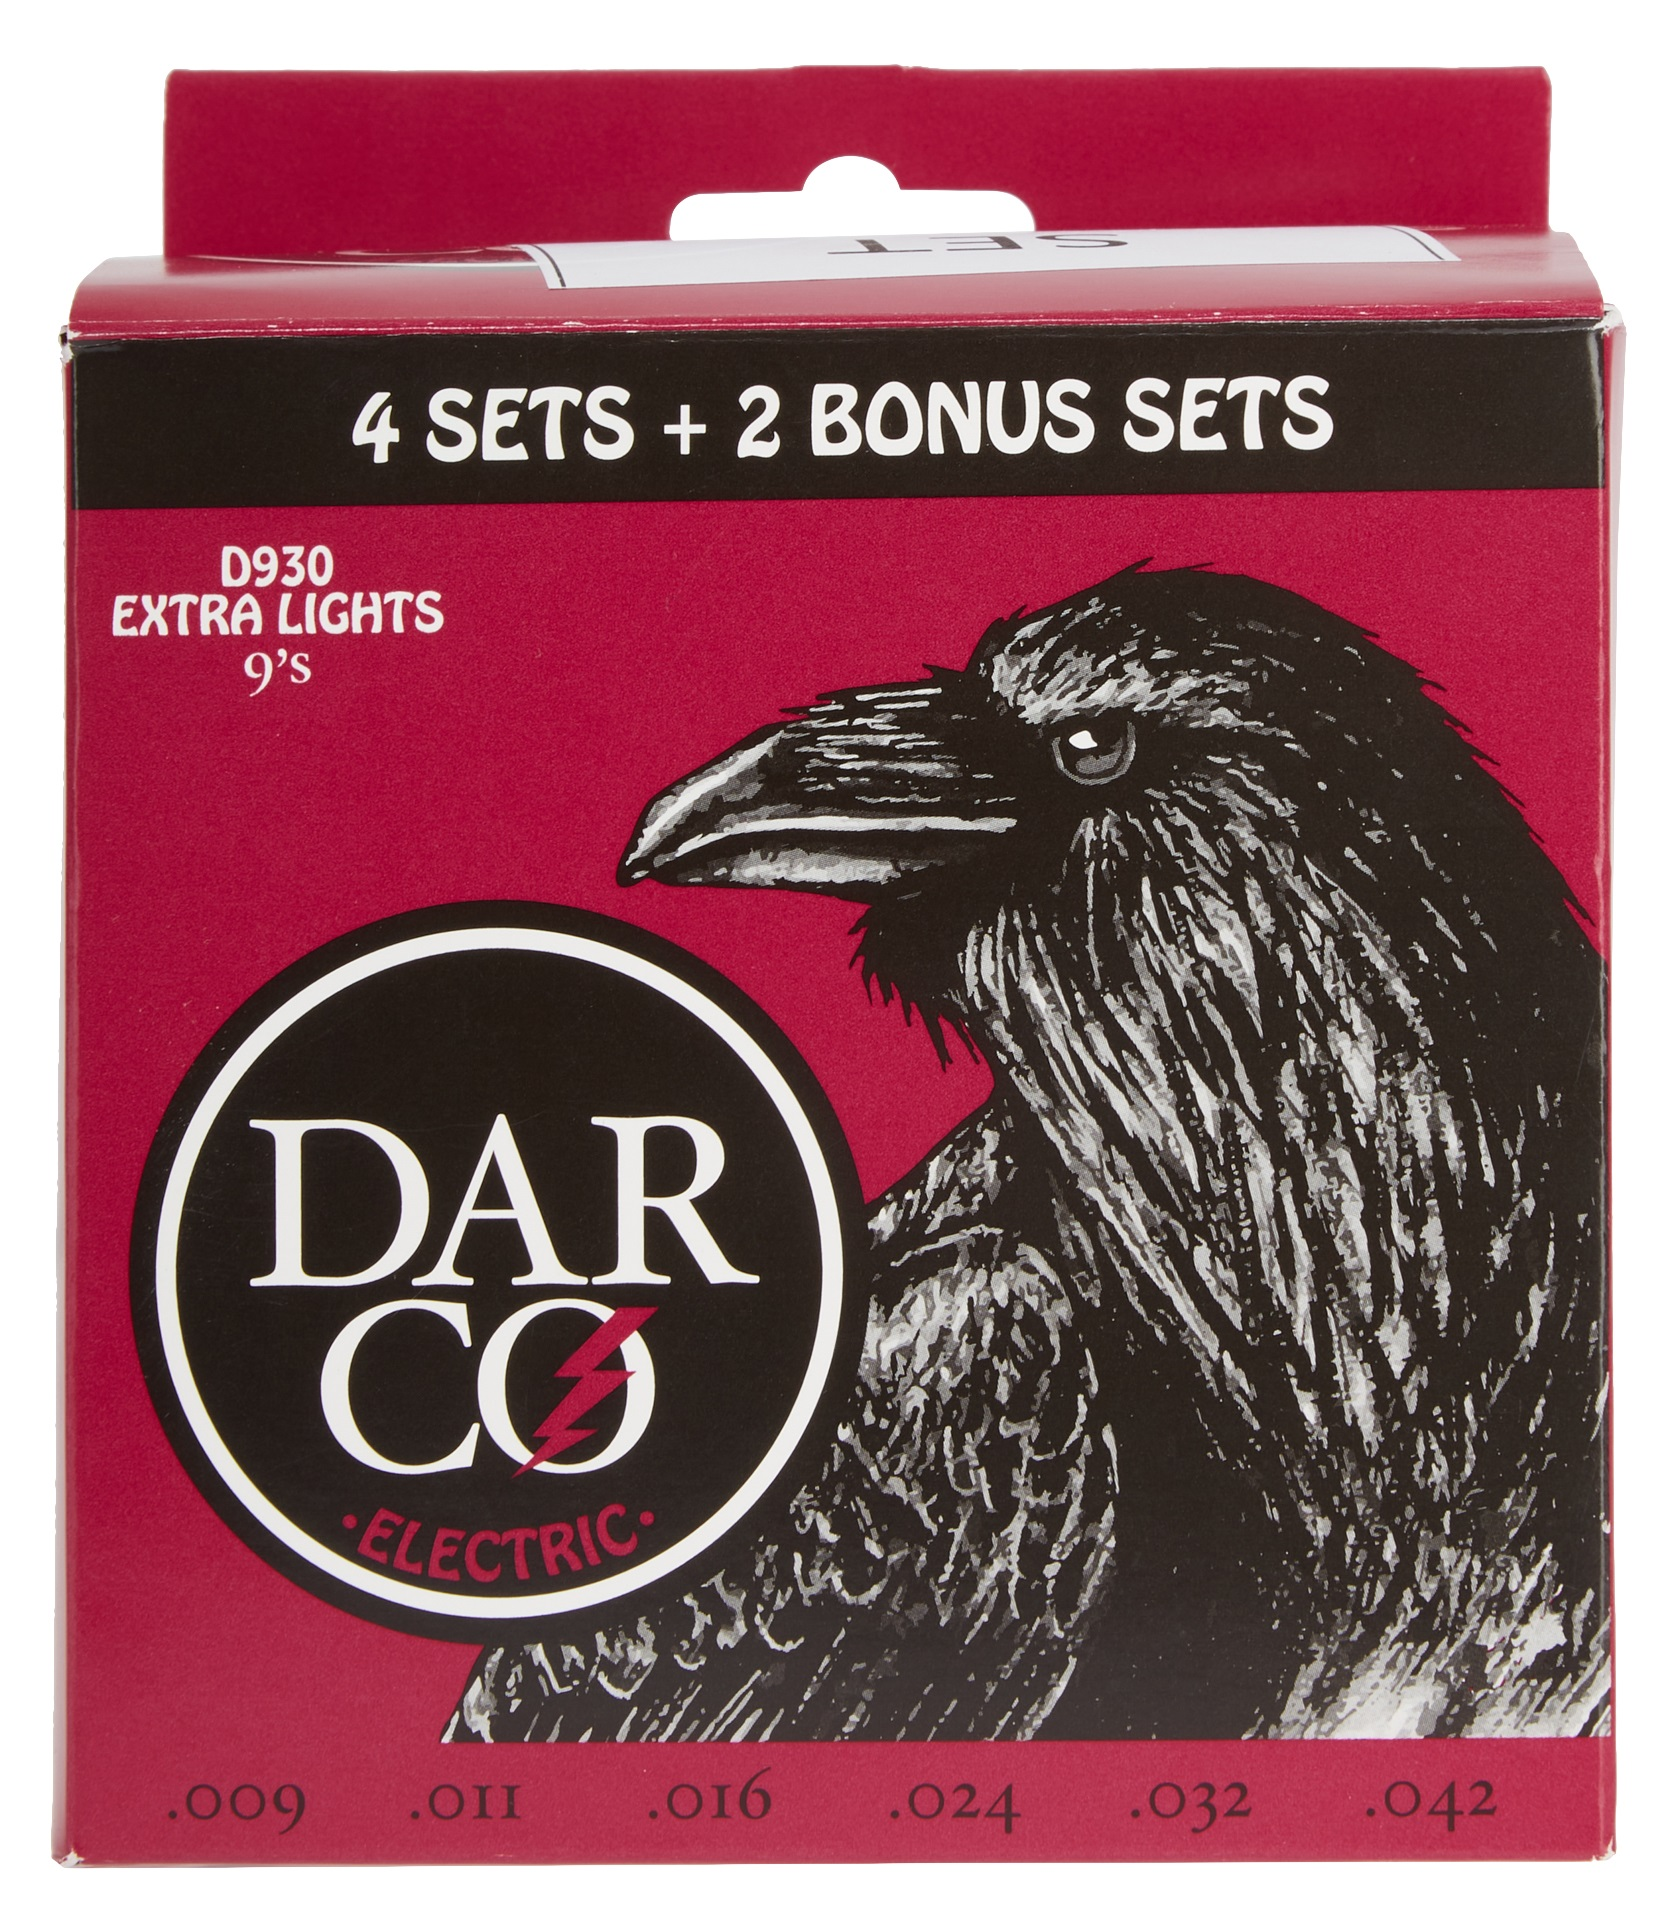 Darco Electric Extra Lights Promo Pack